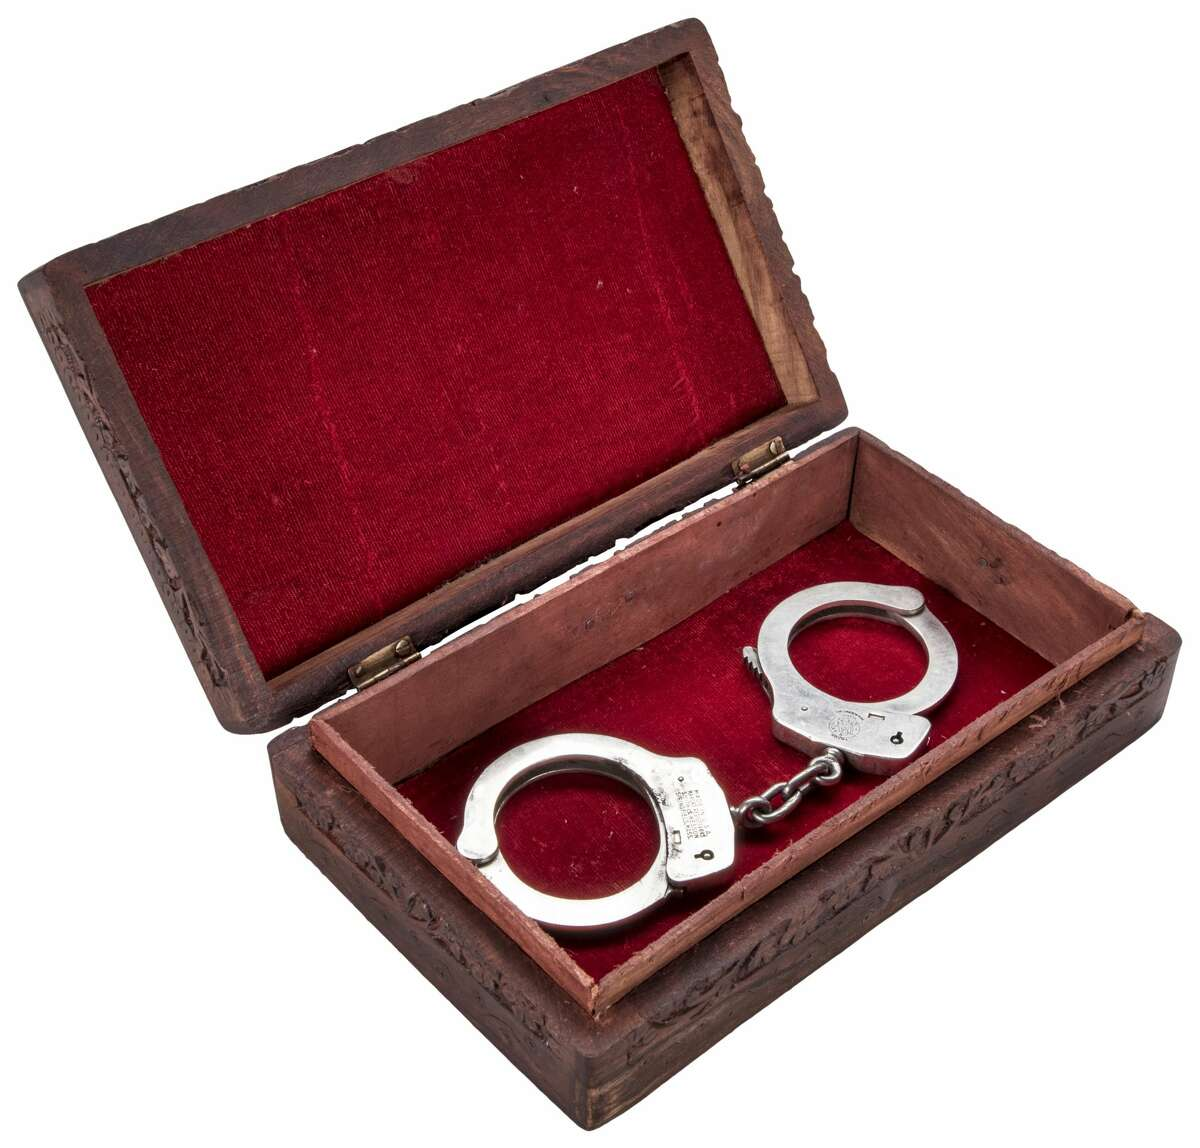 A pair of handcuffs used by Dallas police officer Ray Hawkins to arrest accused Kennedy assassin Lee Harvey Oswald on Nov. 22, 1963 are currently being auctioned off online via Goldin Auctions.